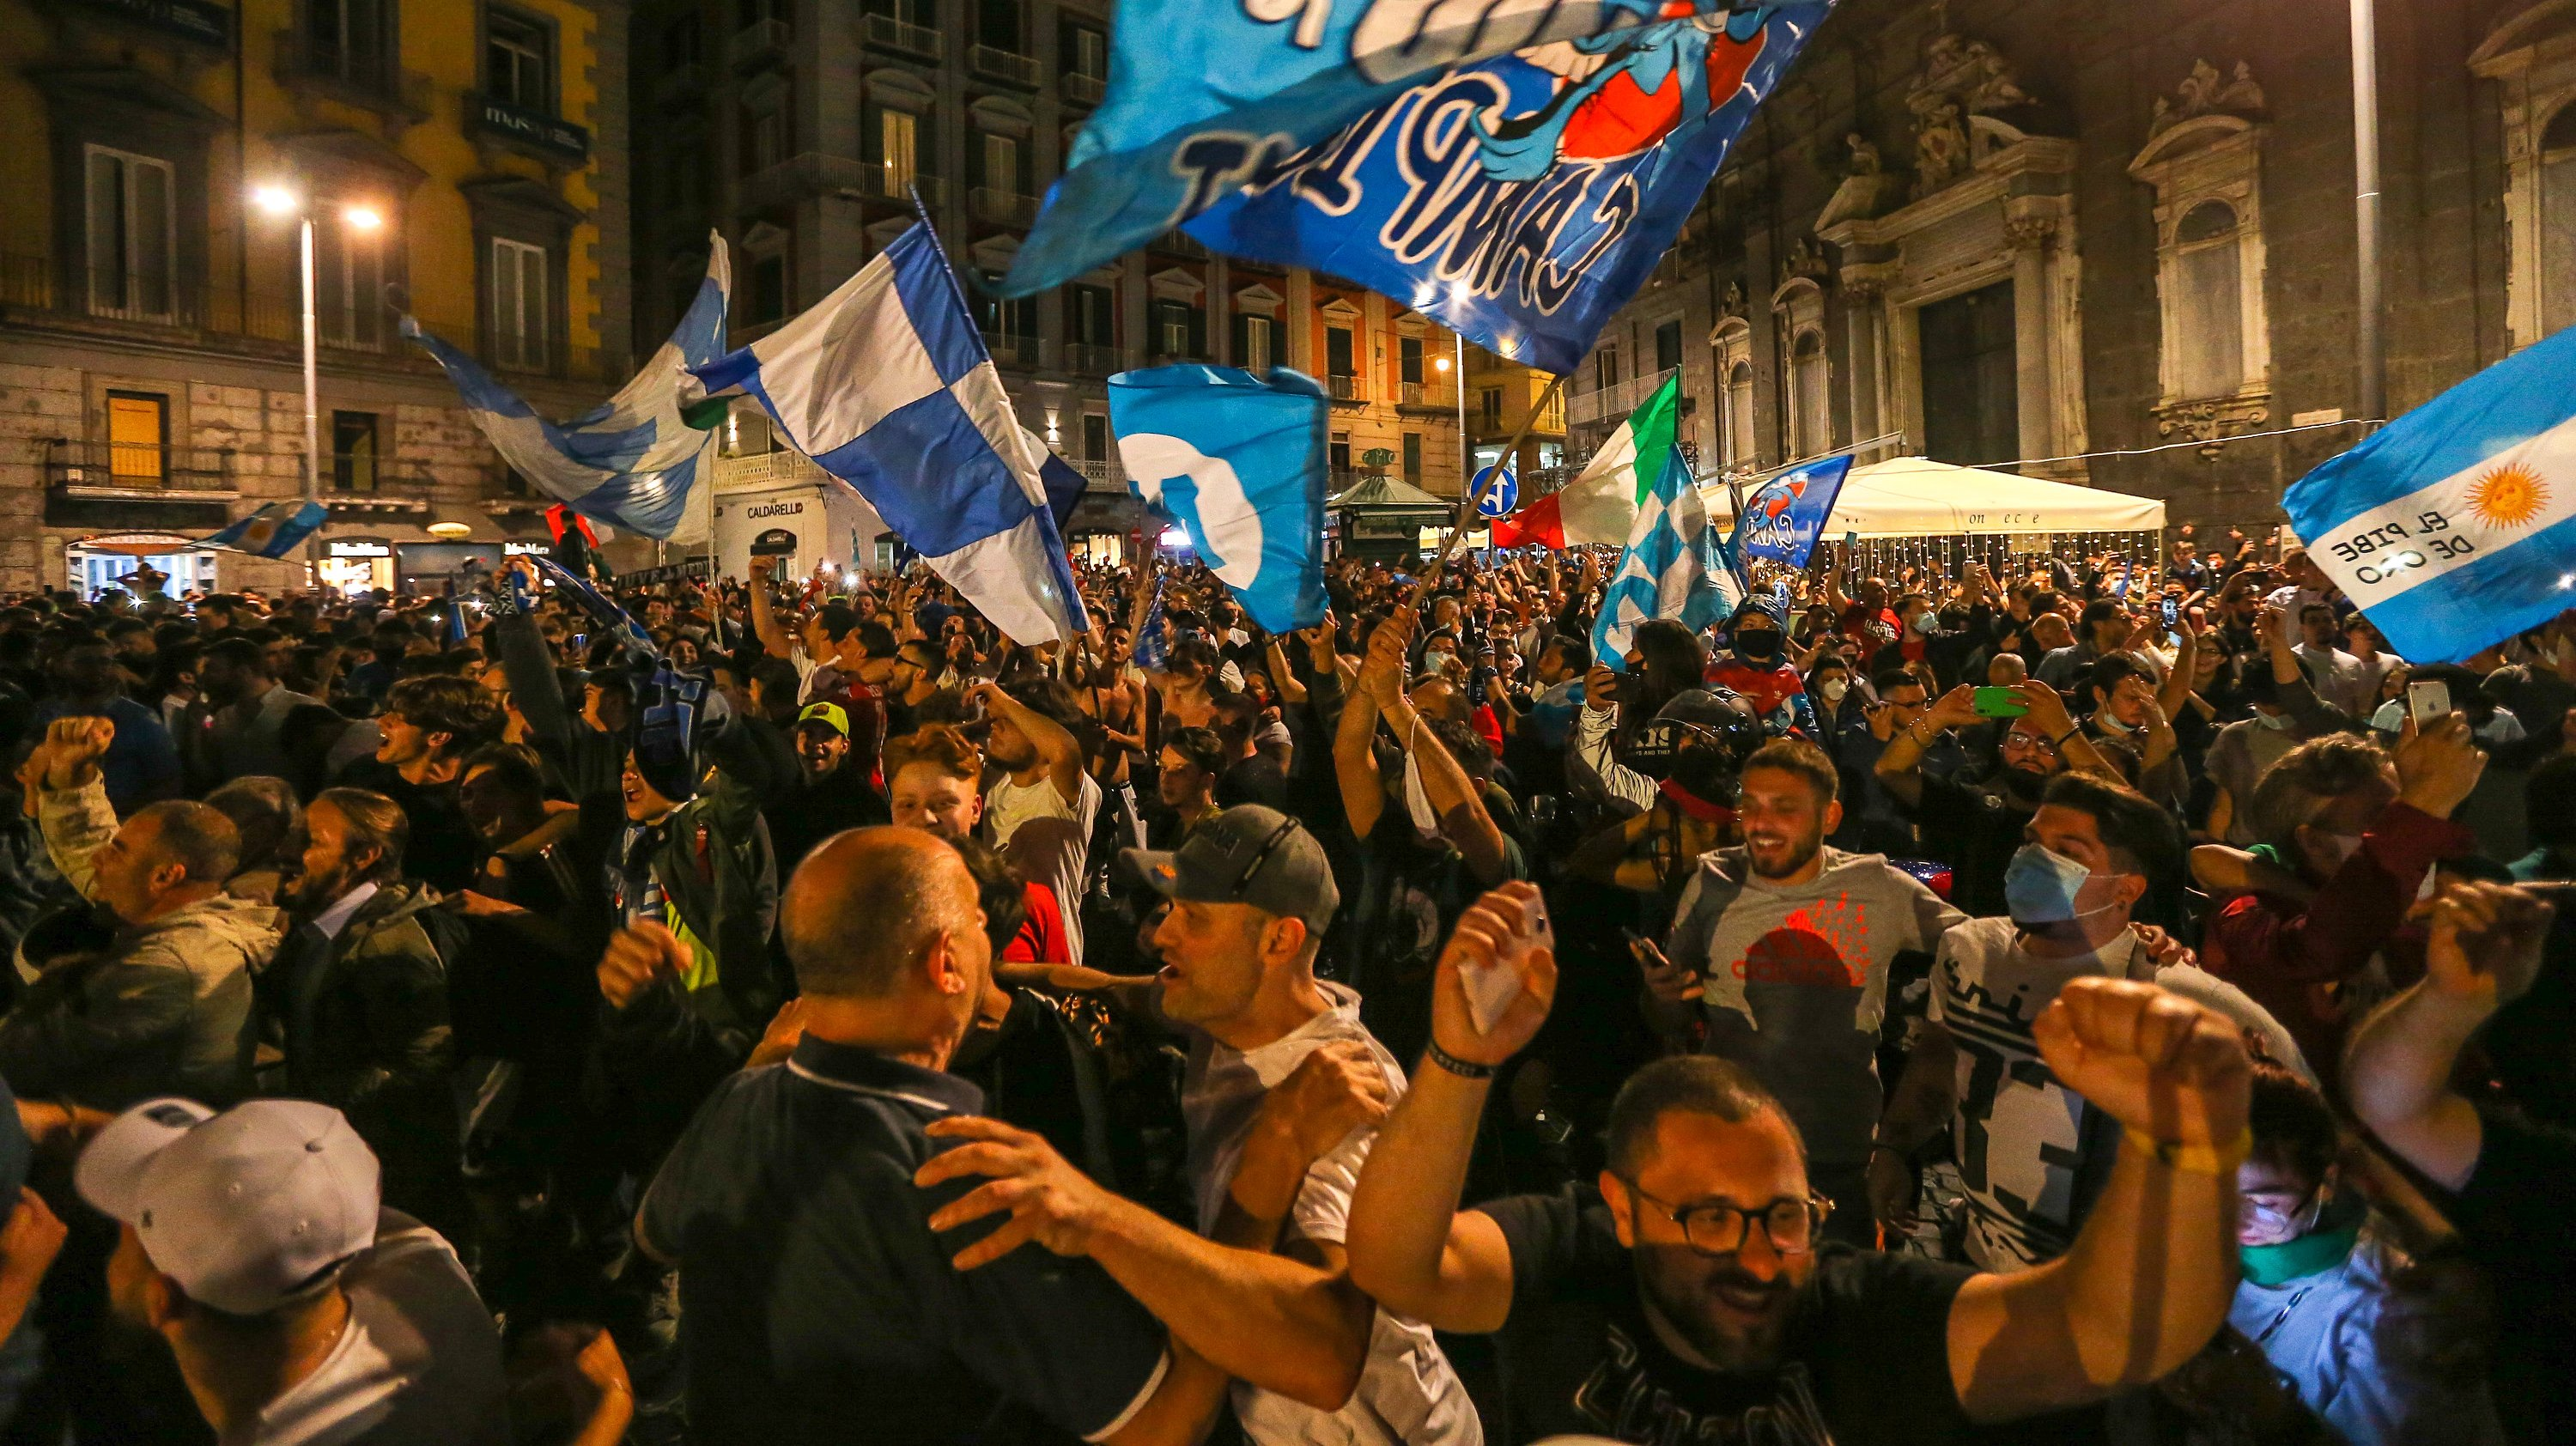 Napoli football fans celebrate the victory of the Italian